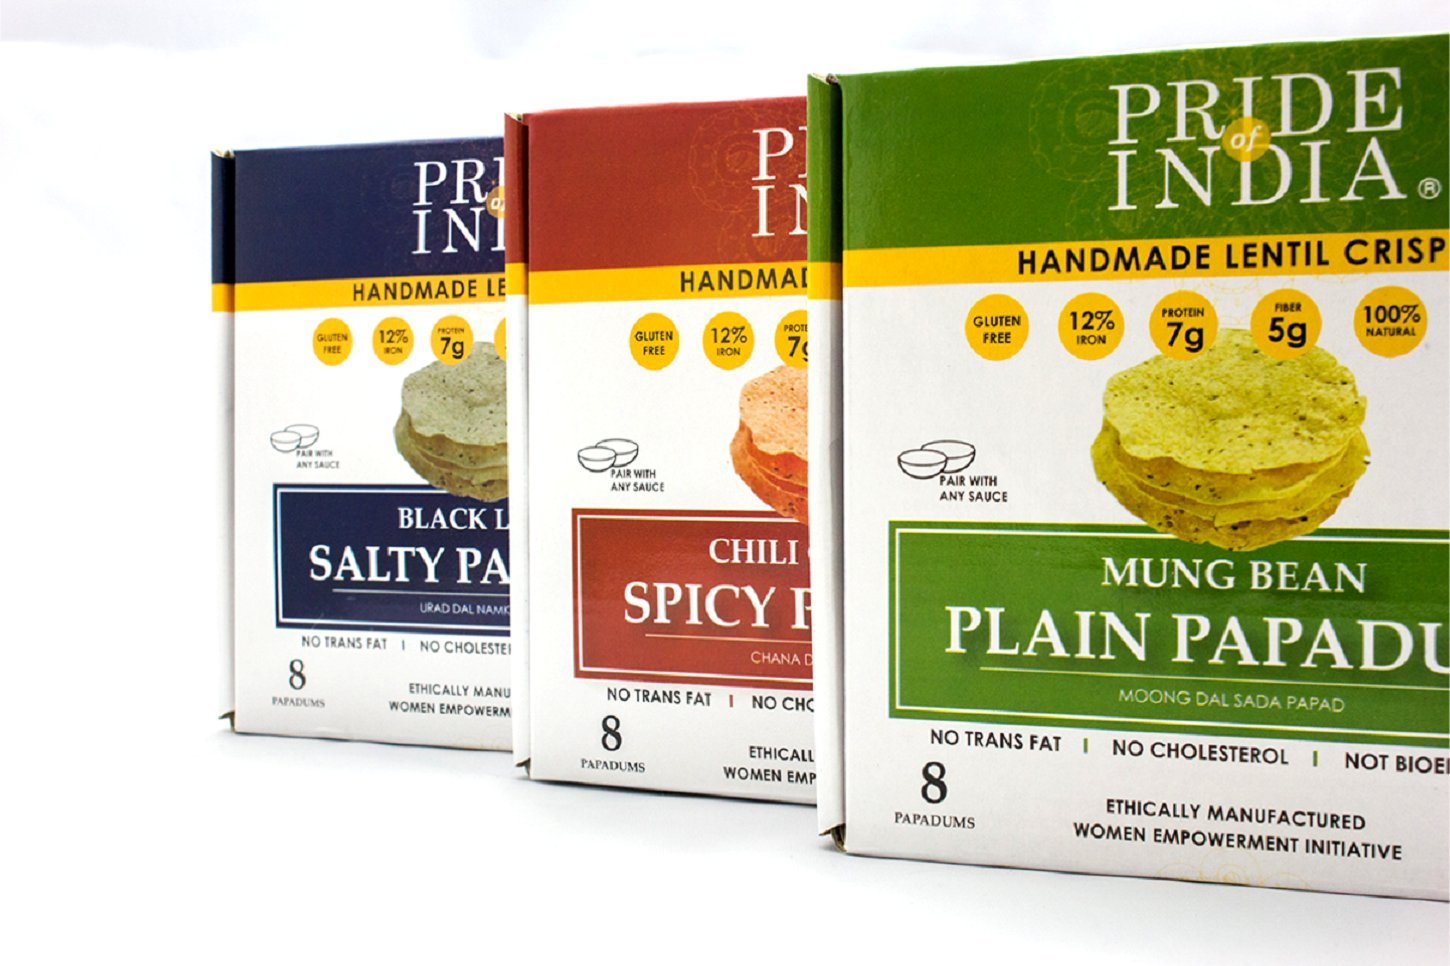 Pride Of India - Assorted Papadum Lentil Crisps - Plain, Salty & Spicy - Pack of 6 (2 Boxes per Flavor) - 3.53oz (100gm) per 8-Count Box - Lentil Chips, Gluten-Free Crackers, Healthy Indian Snack